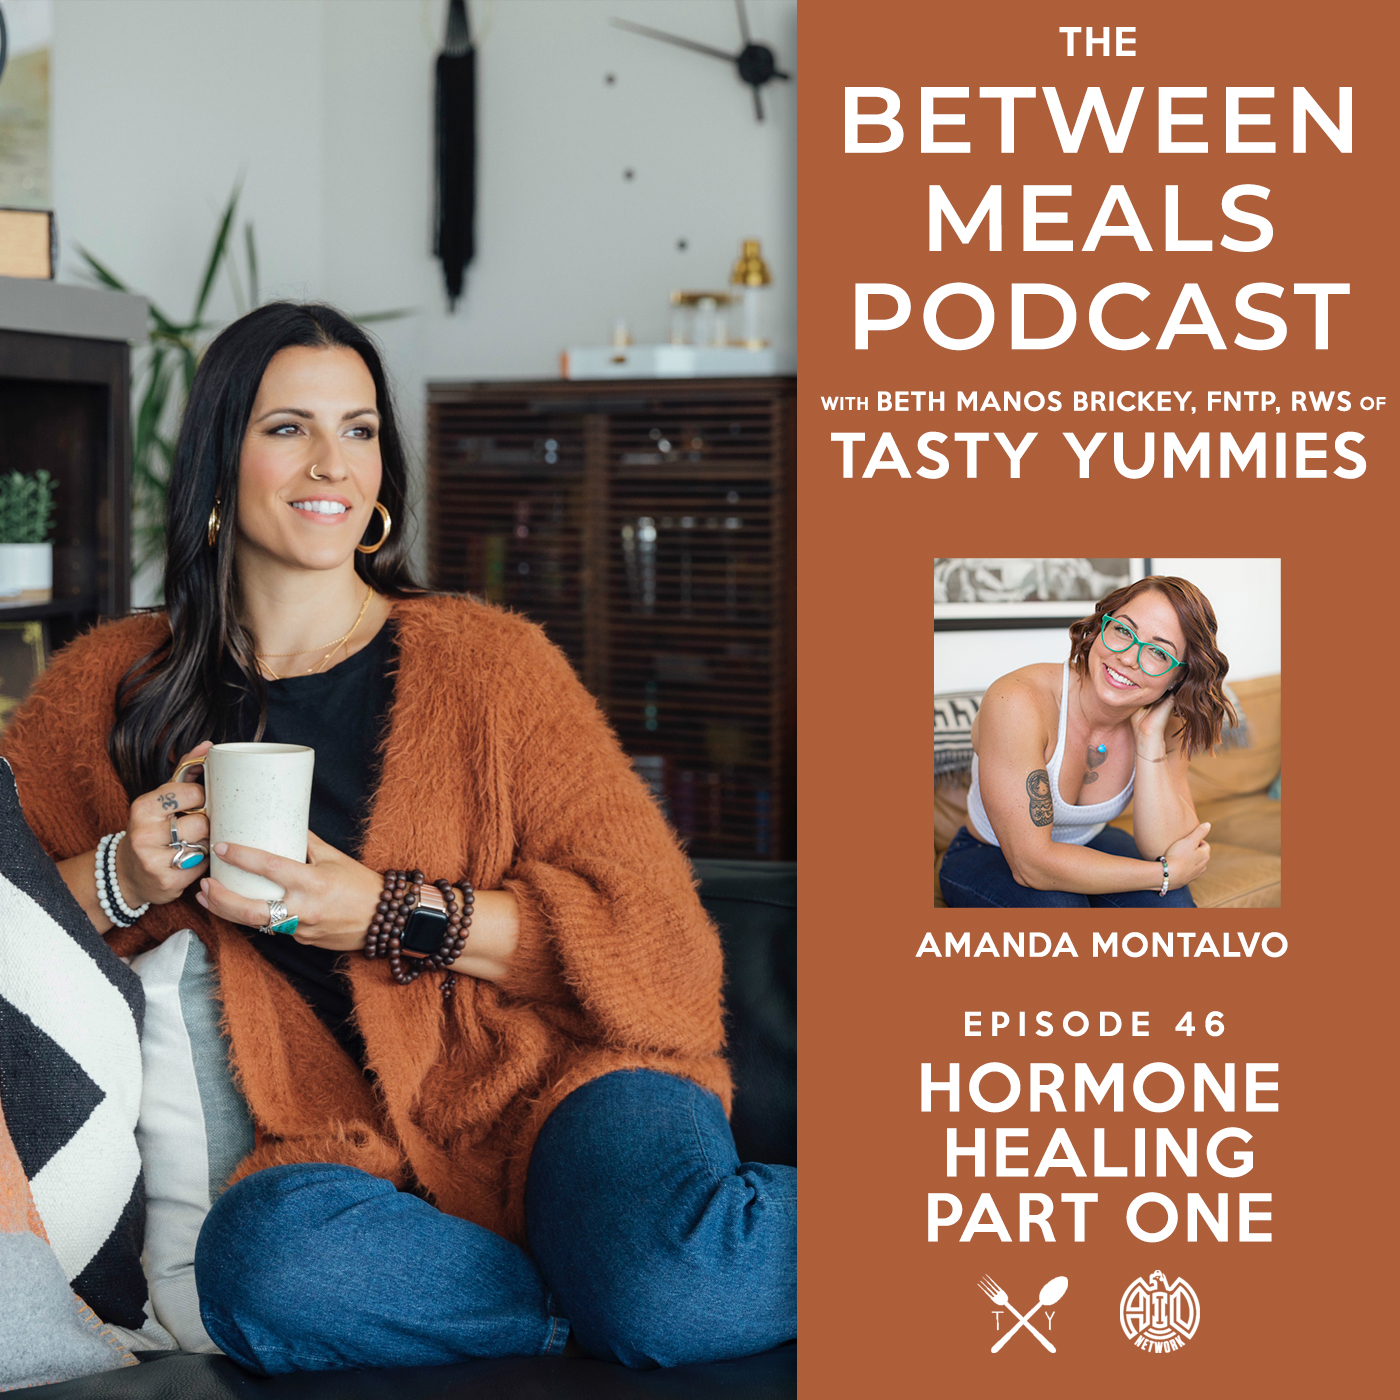 Between Meals Podcast. Episode 46: Hormone Healing Part 1 with Amanda Montalvo